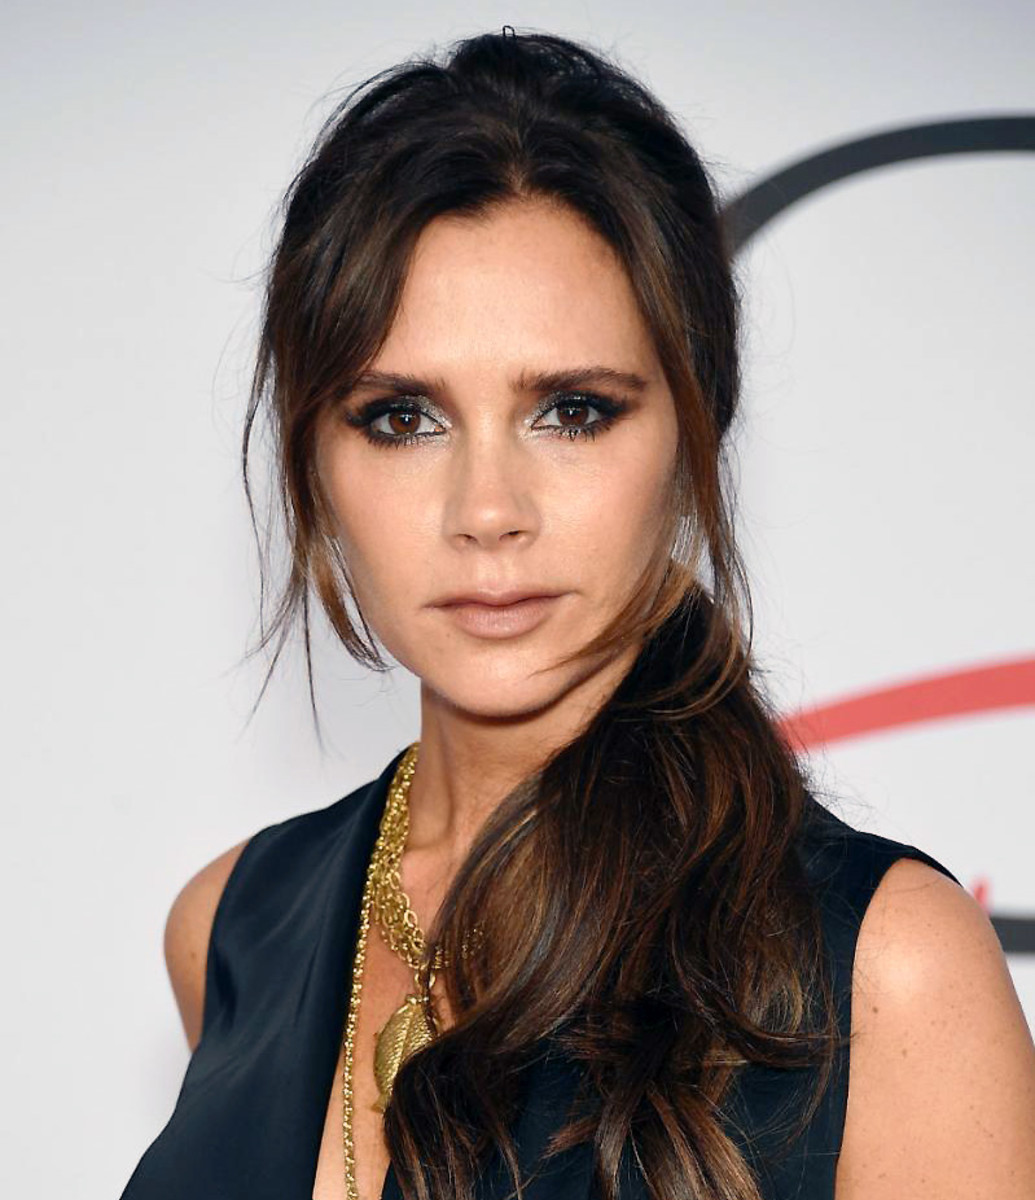 Victoria Beckham + Estee Lauder = a limited-edition makeup collection launching Fall 2016